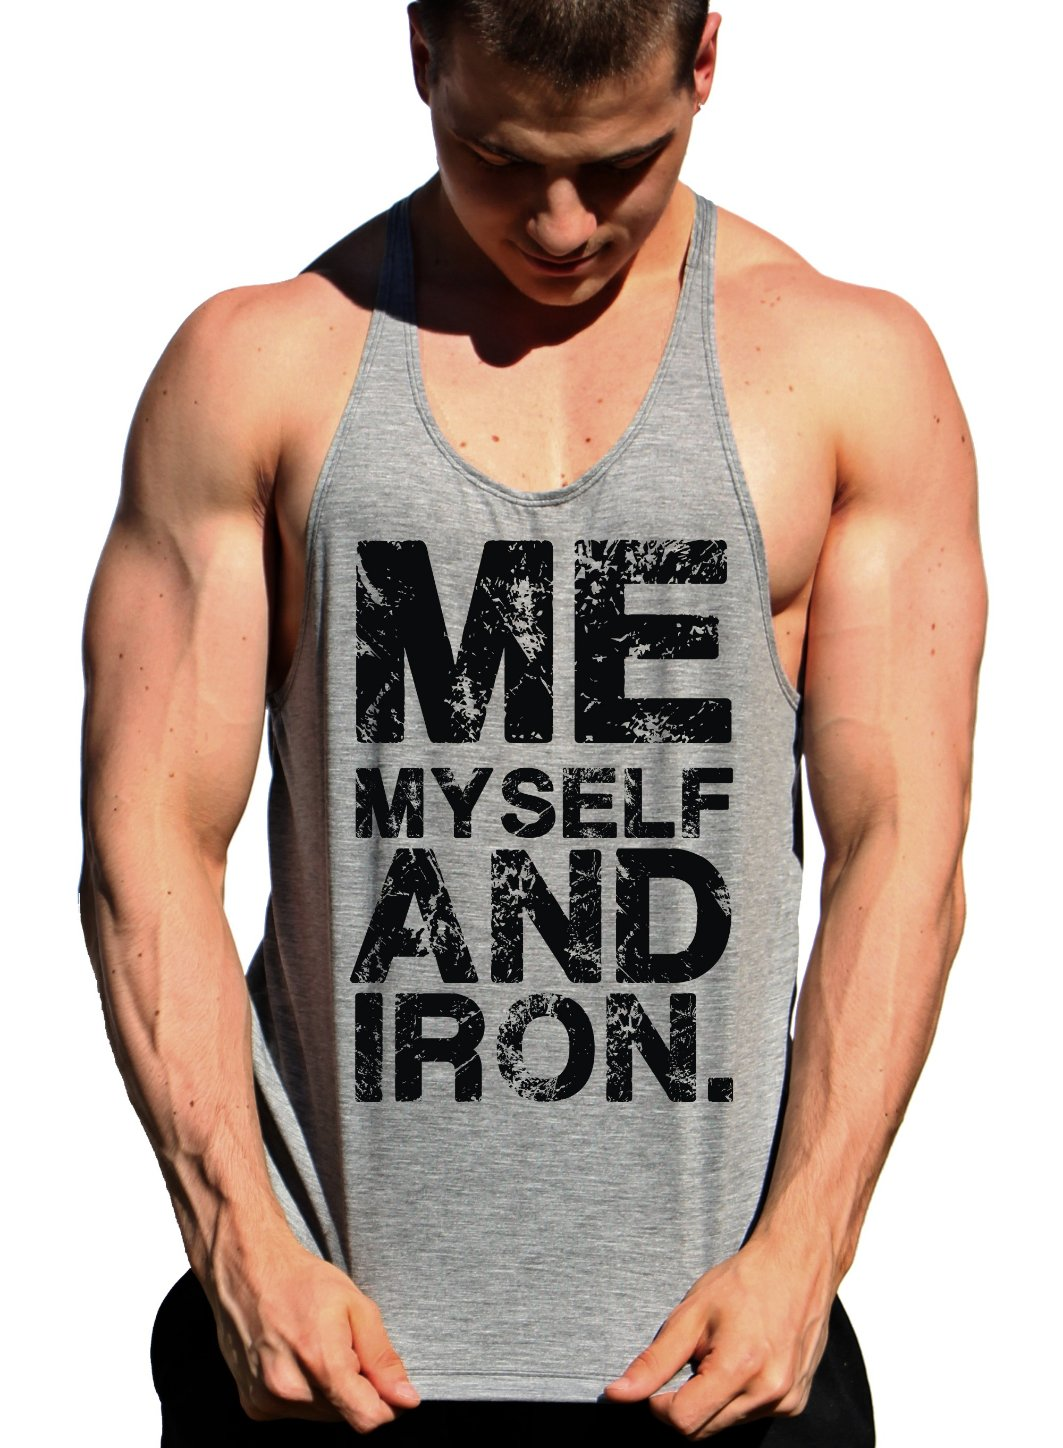 regata cavada masculina para treino me my self and iron